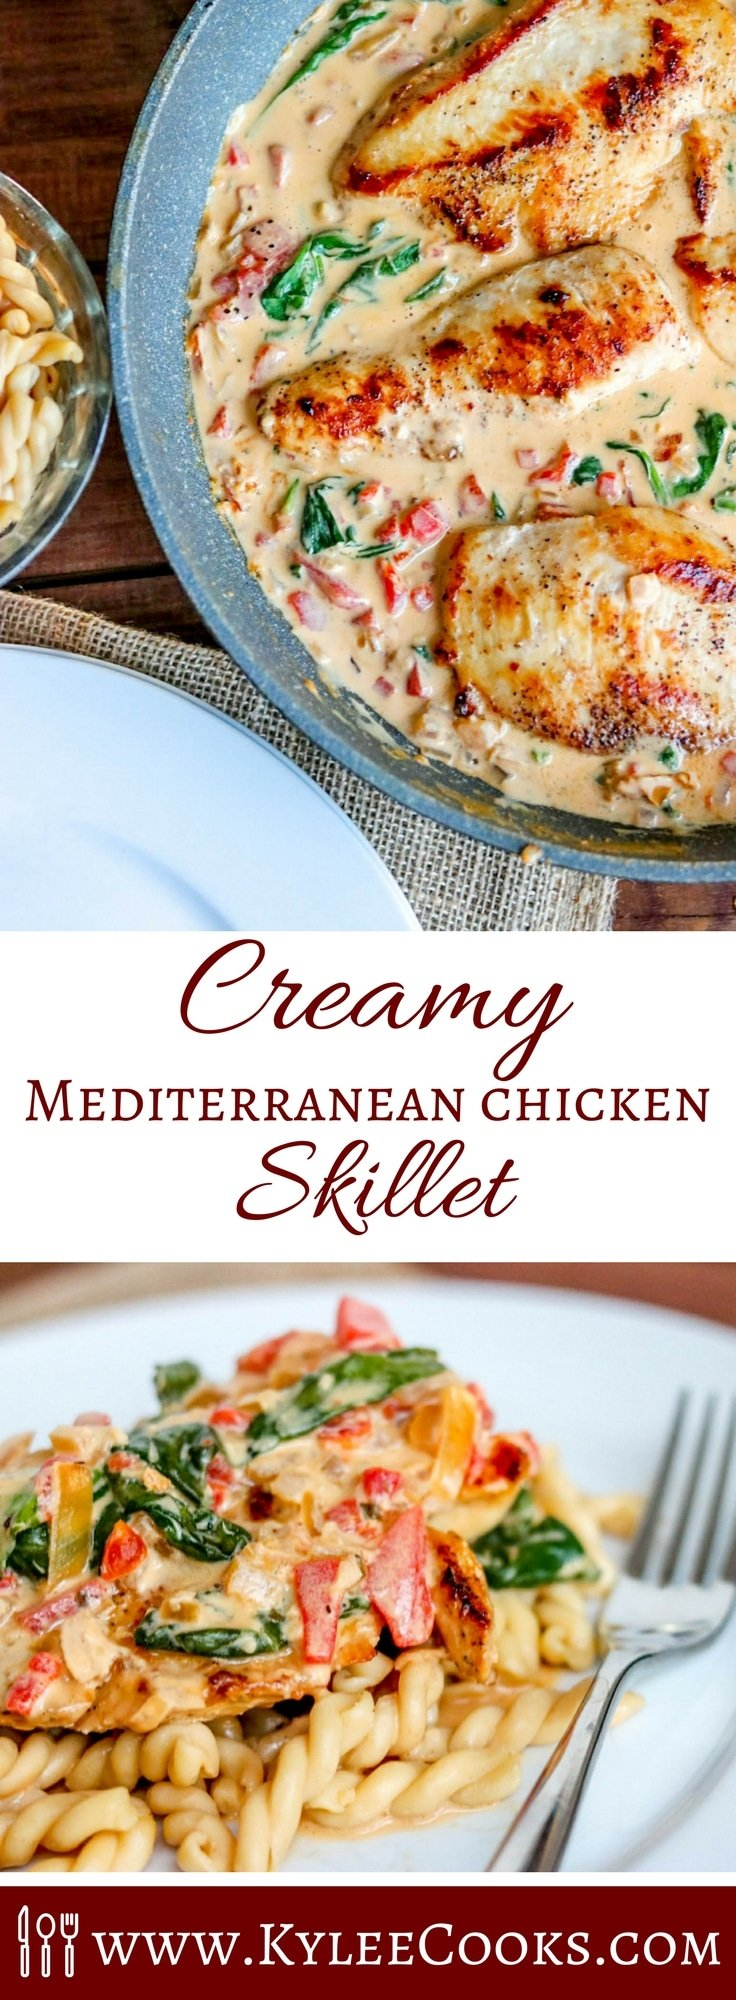 This Creamy Mediterranean Chicken Skillet is so delicious, you won't believe how easy and fast it is to cook. Perfect for weeknights, with flavors everyone will enjoy - you'll be fighting over the leftover sauce! @ArlaUSA #Sponsored #ArlaCreamCheese